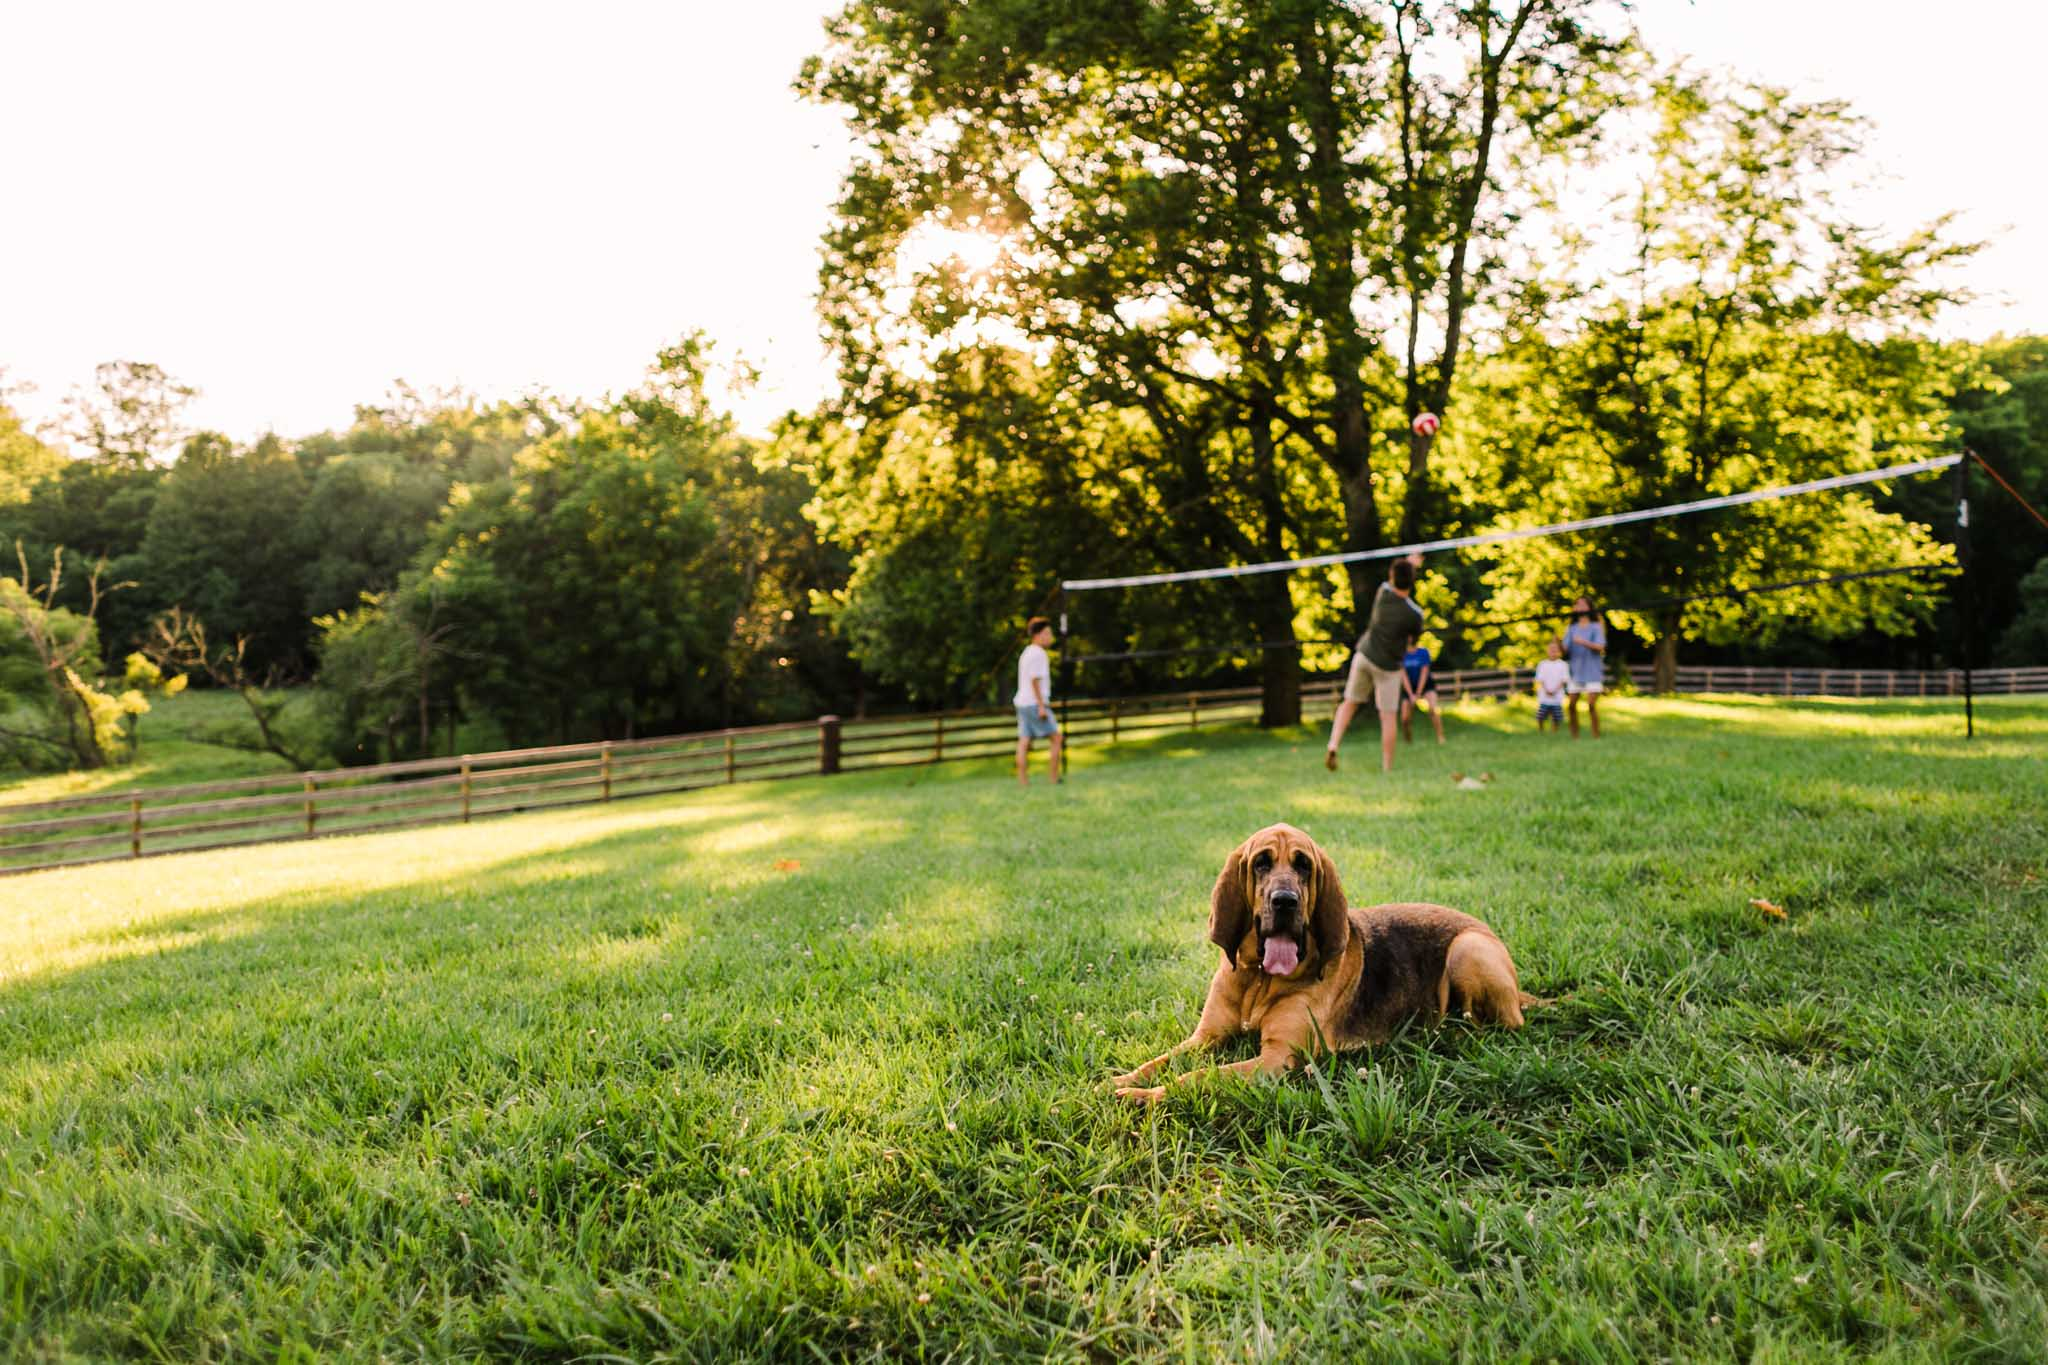 Durham Family Photographer | By G. Lin Photography | Bloodhound sitting on grass